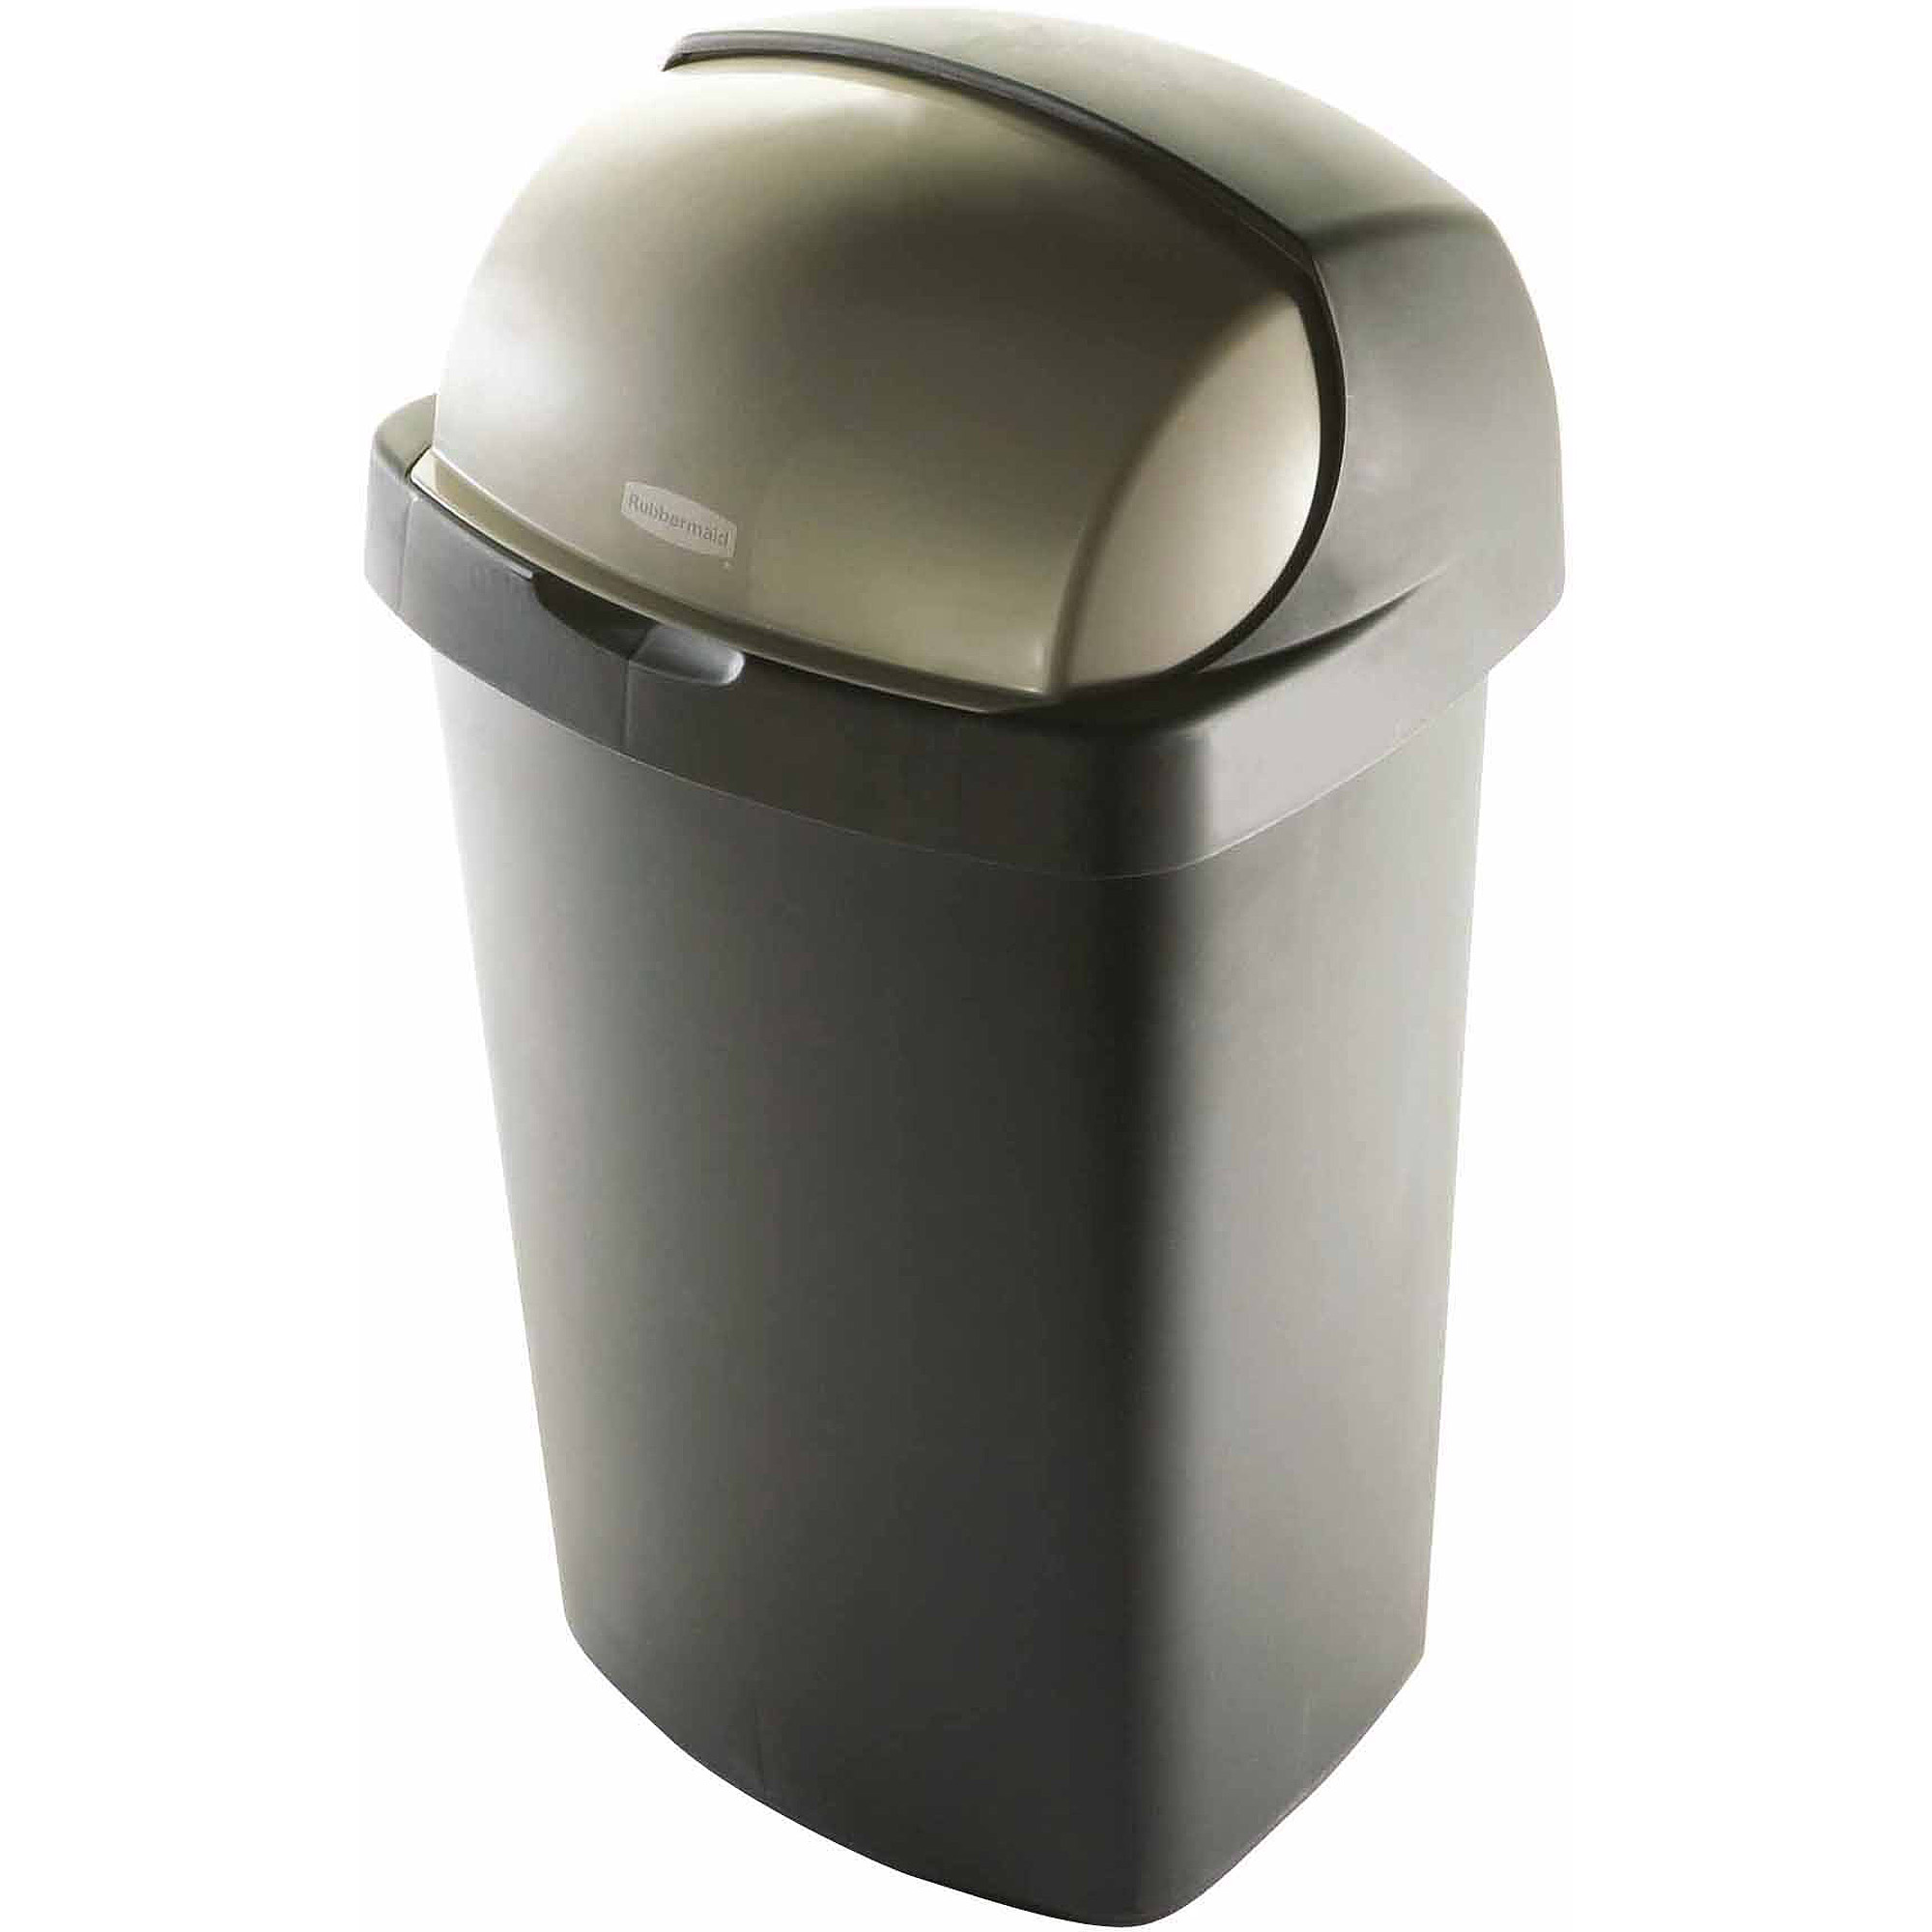 Waste Basket rubbermaid 13-gallon roll top wastebasket, bronze - walmart